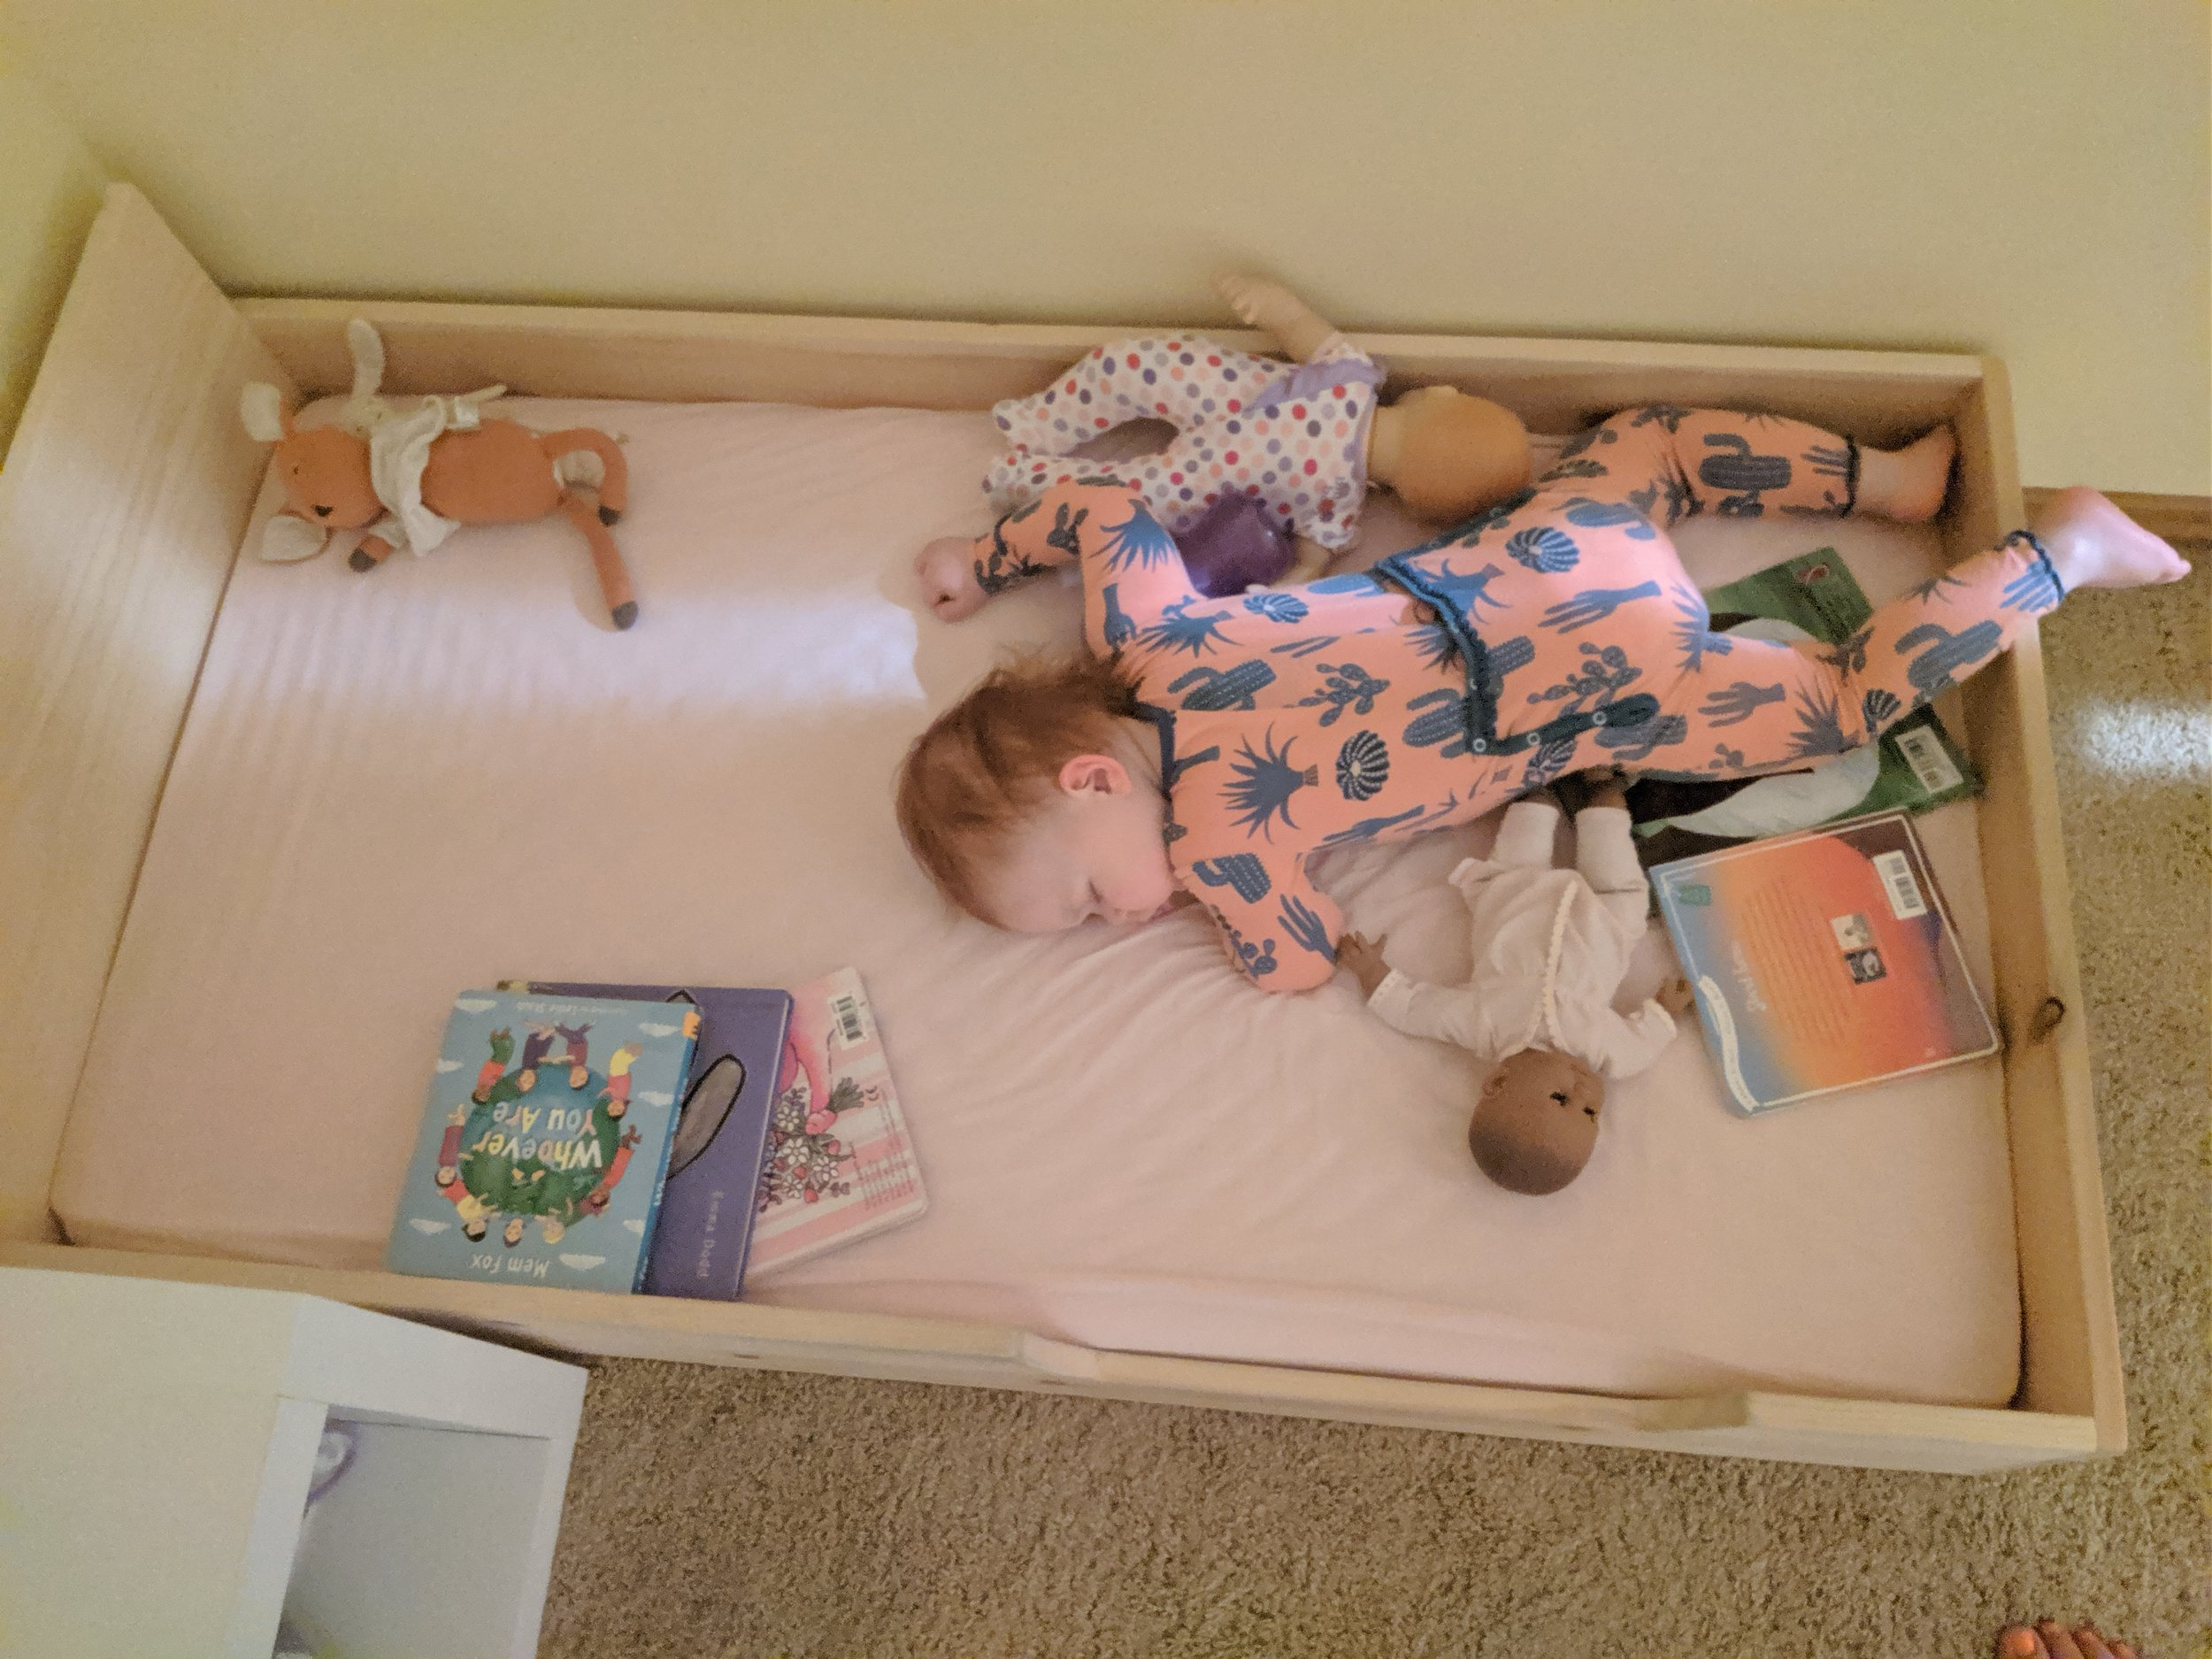 Our Montessori Floor Bed Journey - Montessori in Real Life